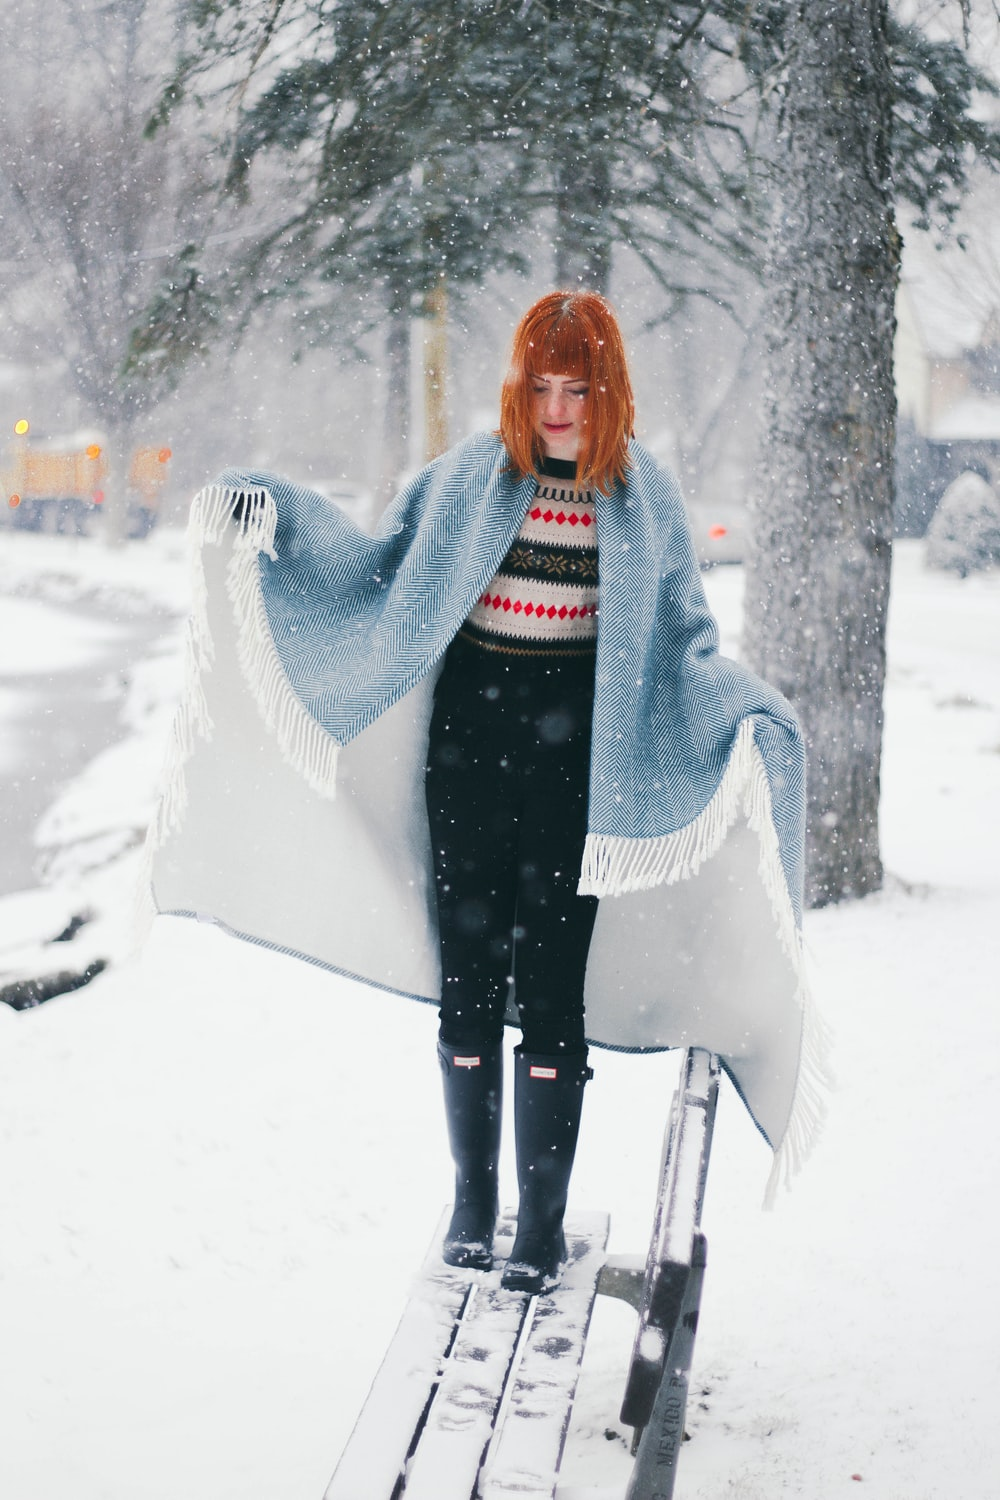 woman standing on snow covered bench while snowing during daytime